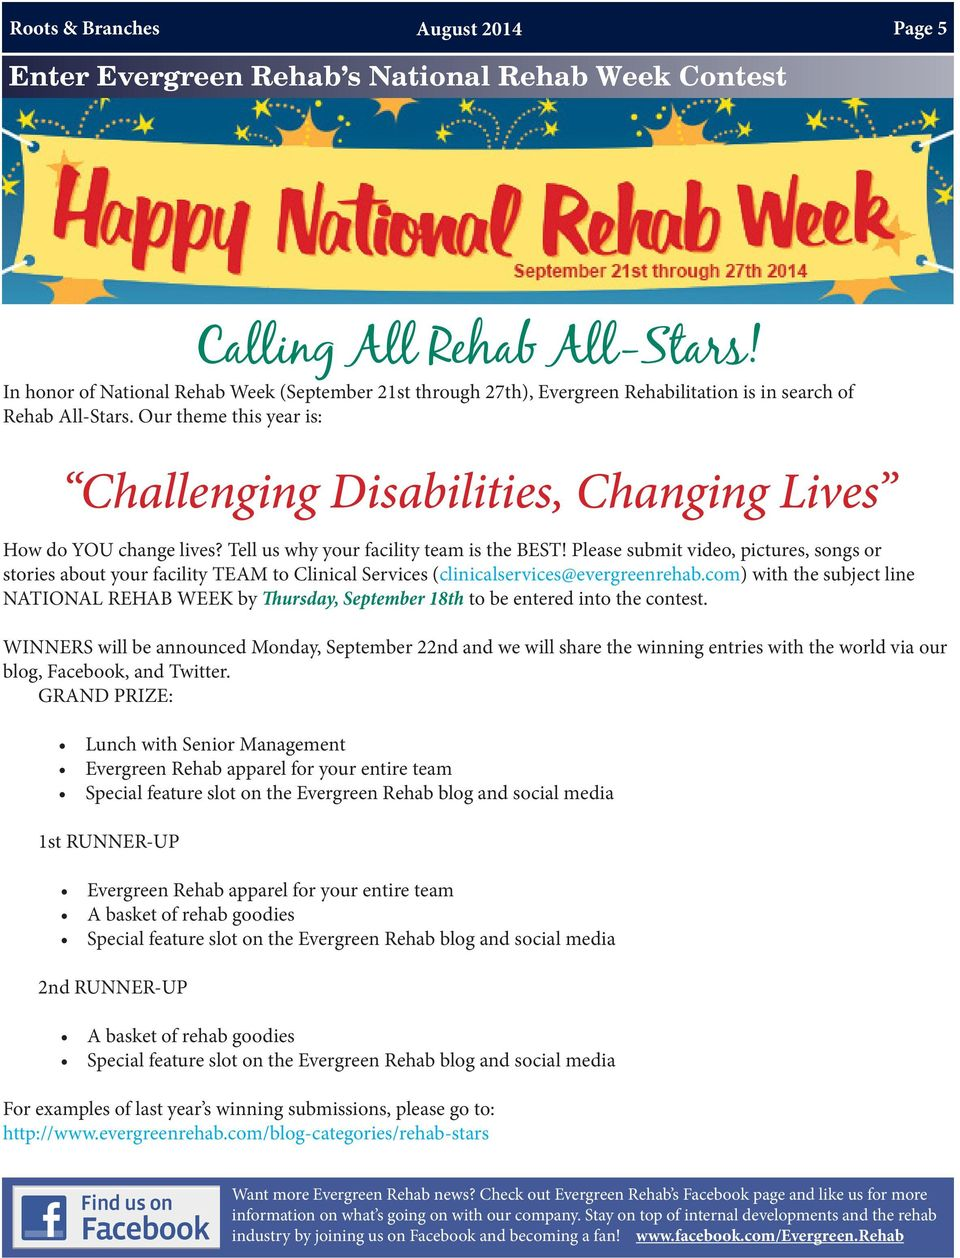 Our theme this year is: Challenging Disabilities, Changing Lives How do YOU change lives? Tell us why your facility team is the BEST!